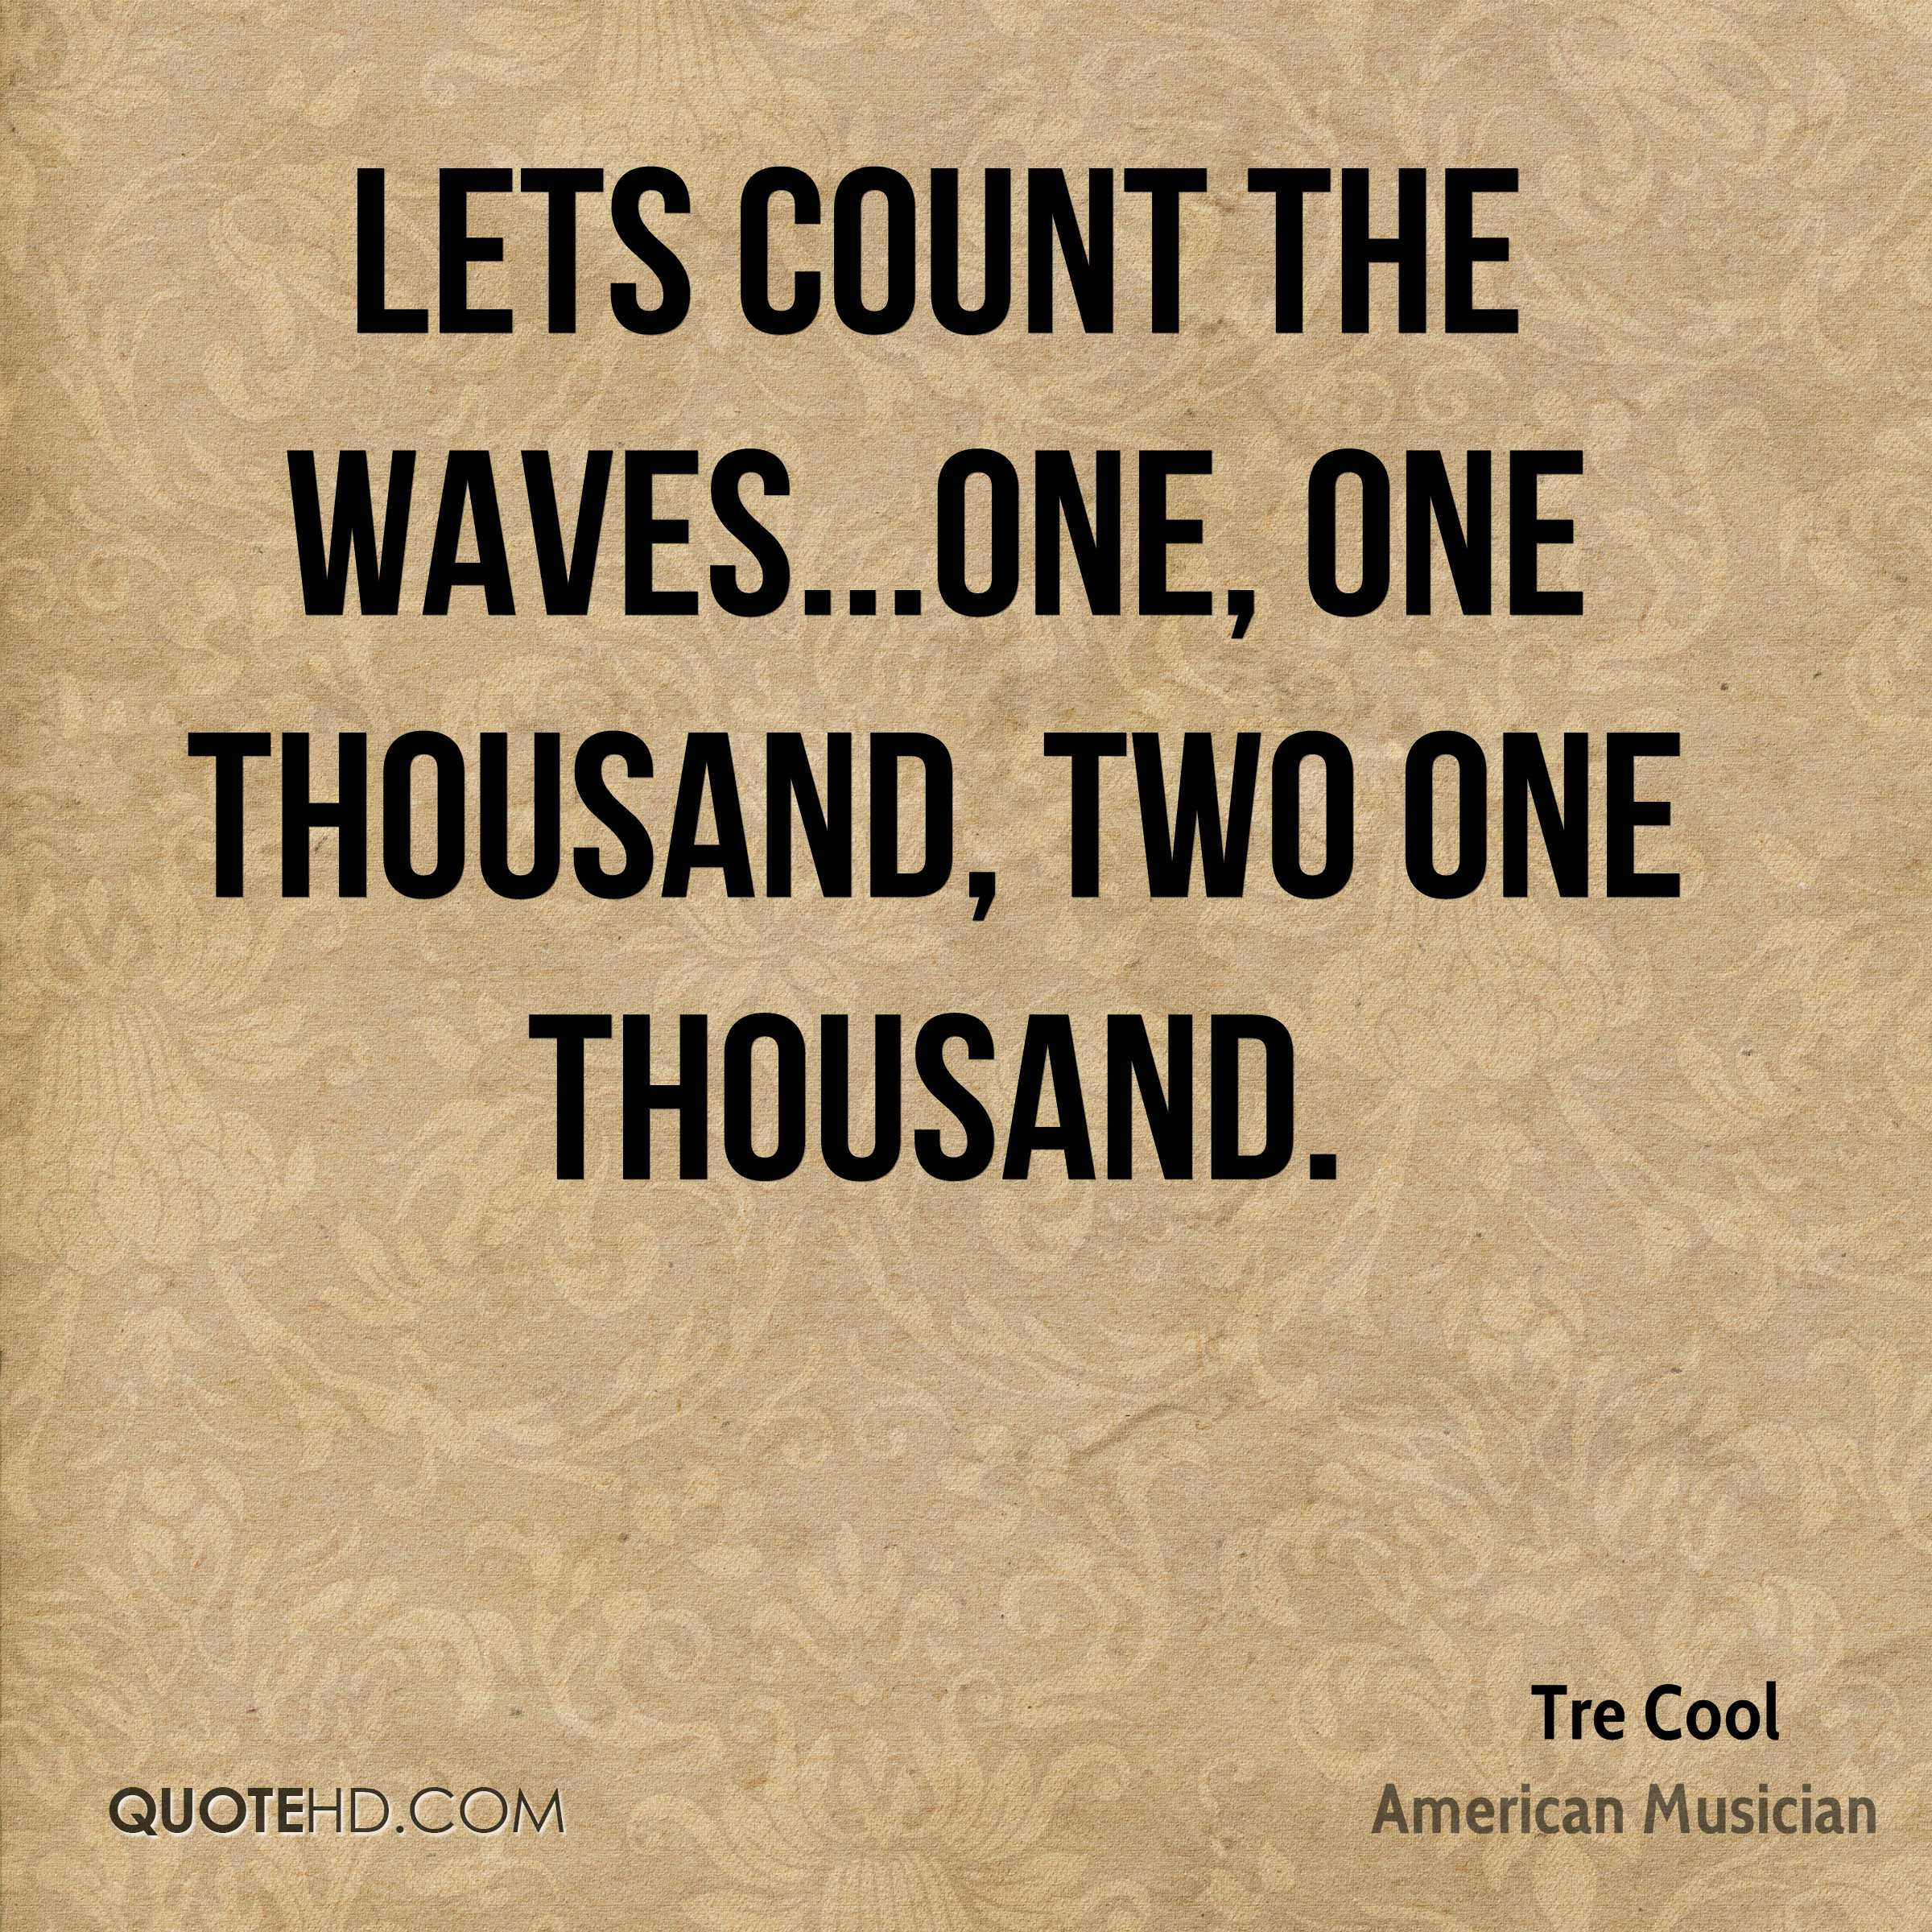 Lets count the waves...one, one thousand, two one thousand.